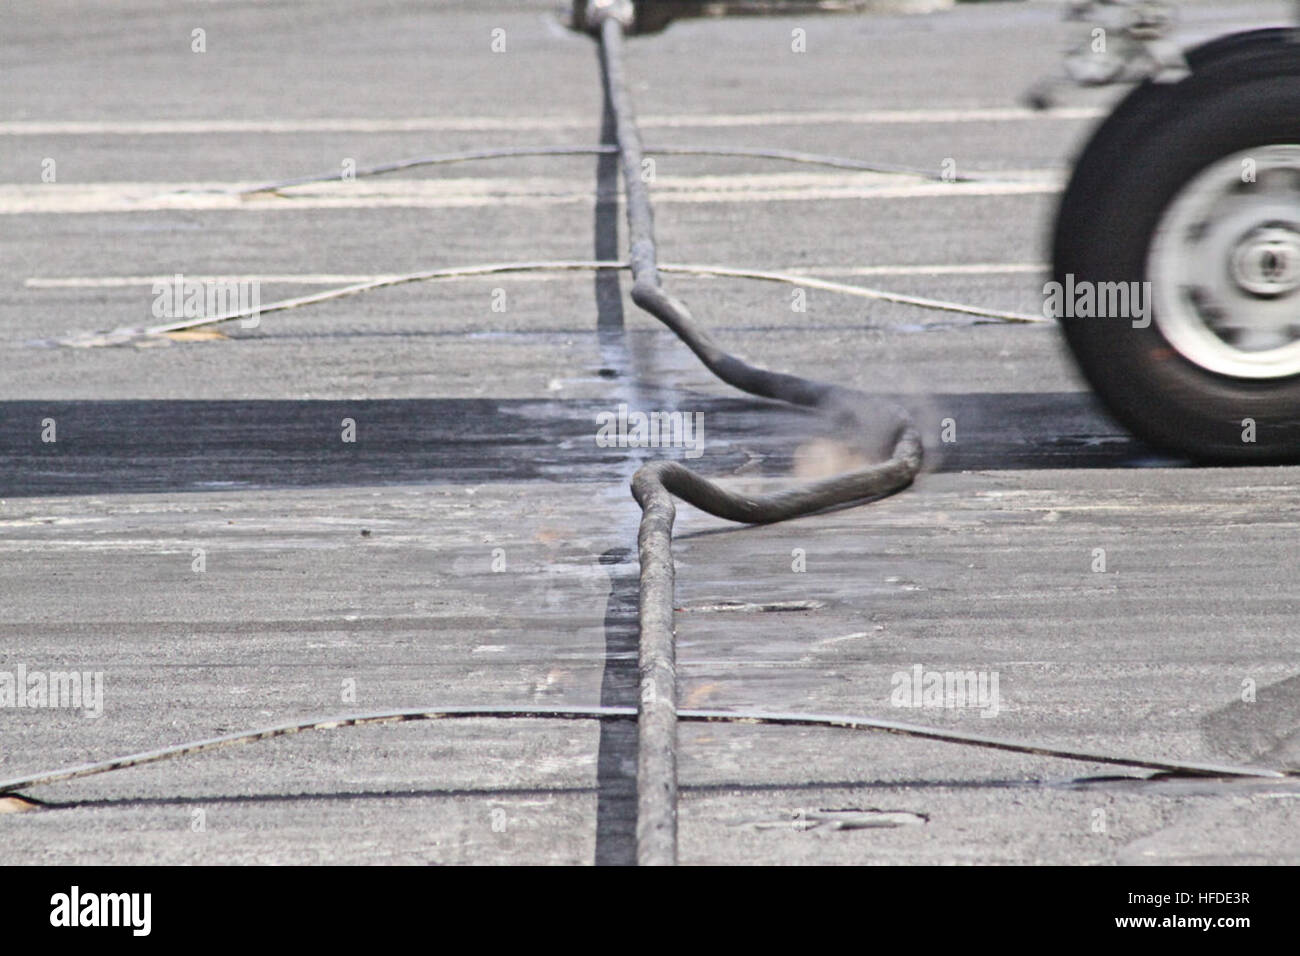 Aircraft Carrier 3-wire Stock Photo: 129988875 - Alamy